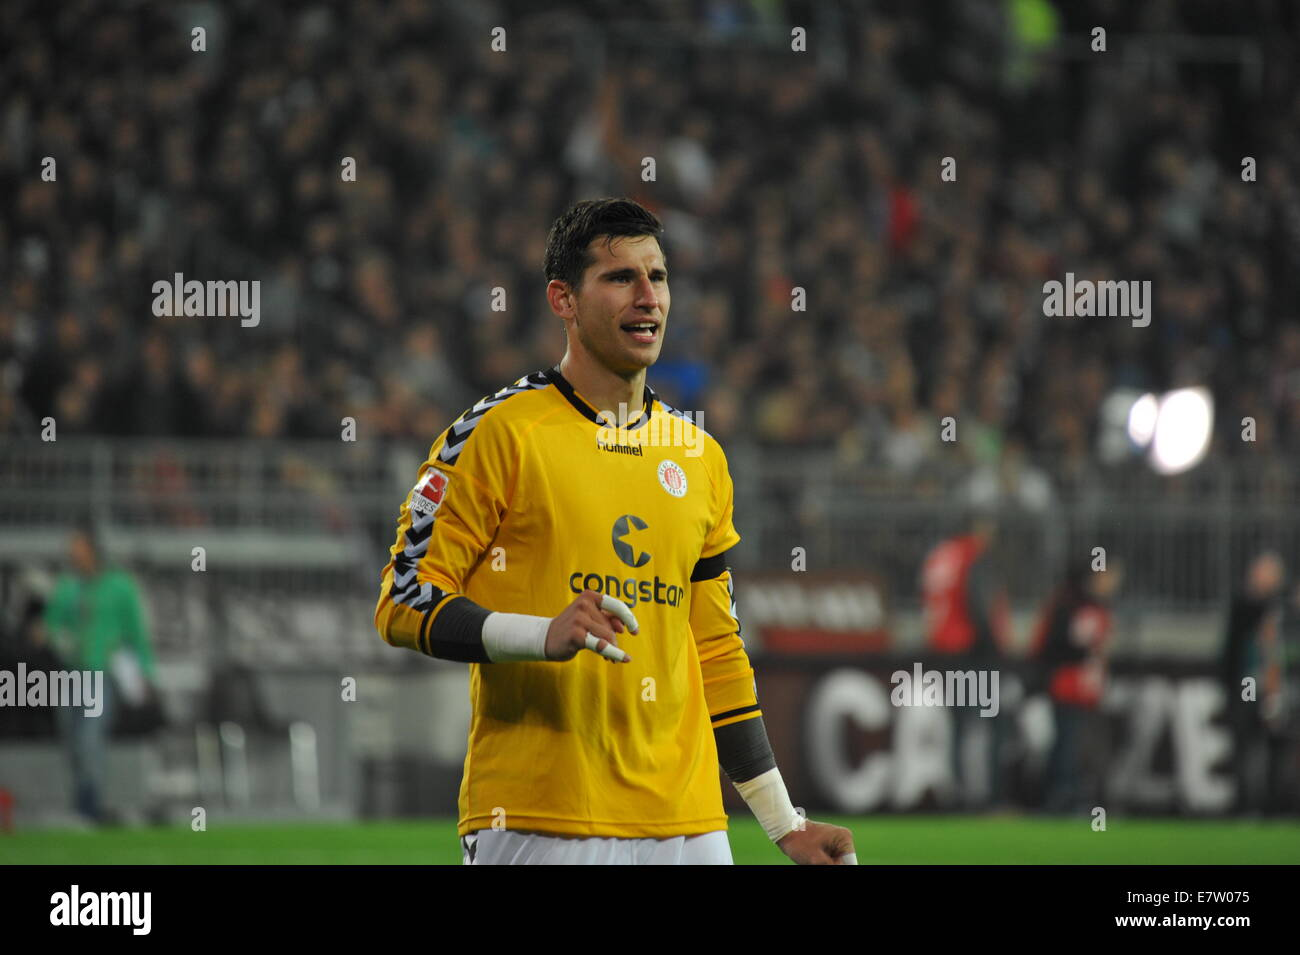 FC St. Pauli Keeper Philipp Heerwagen, DFB-Pokal, Hamburg, Germany. Editorial use only. - Stock Image